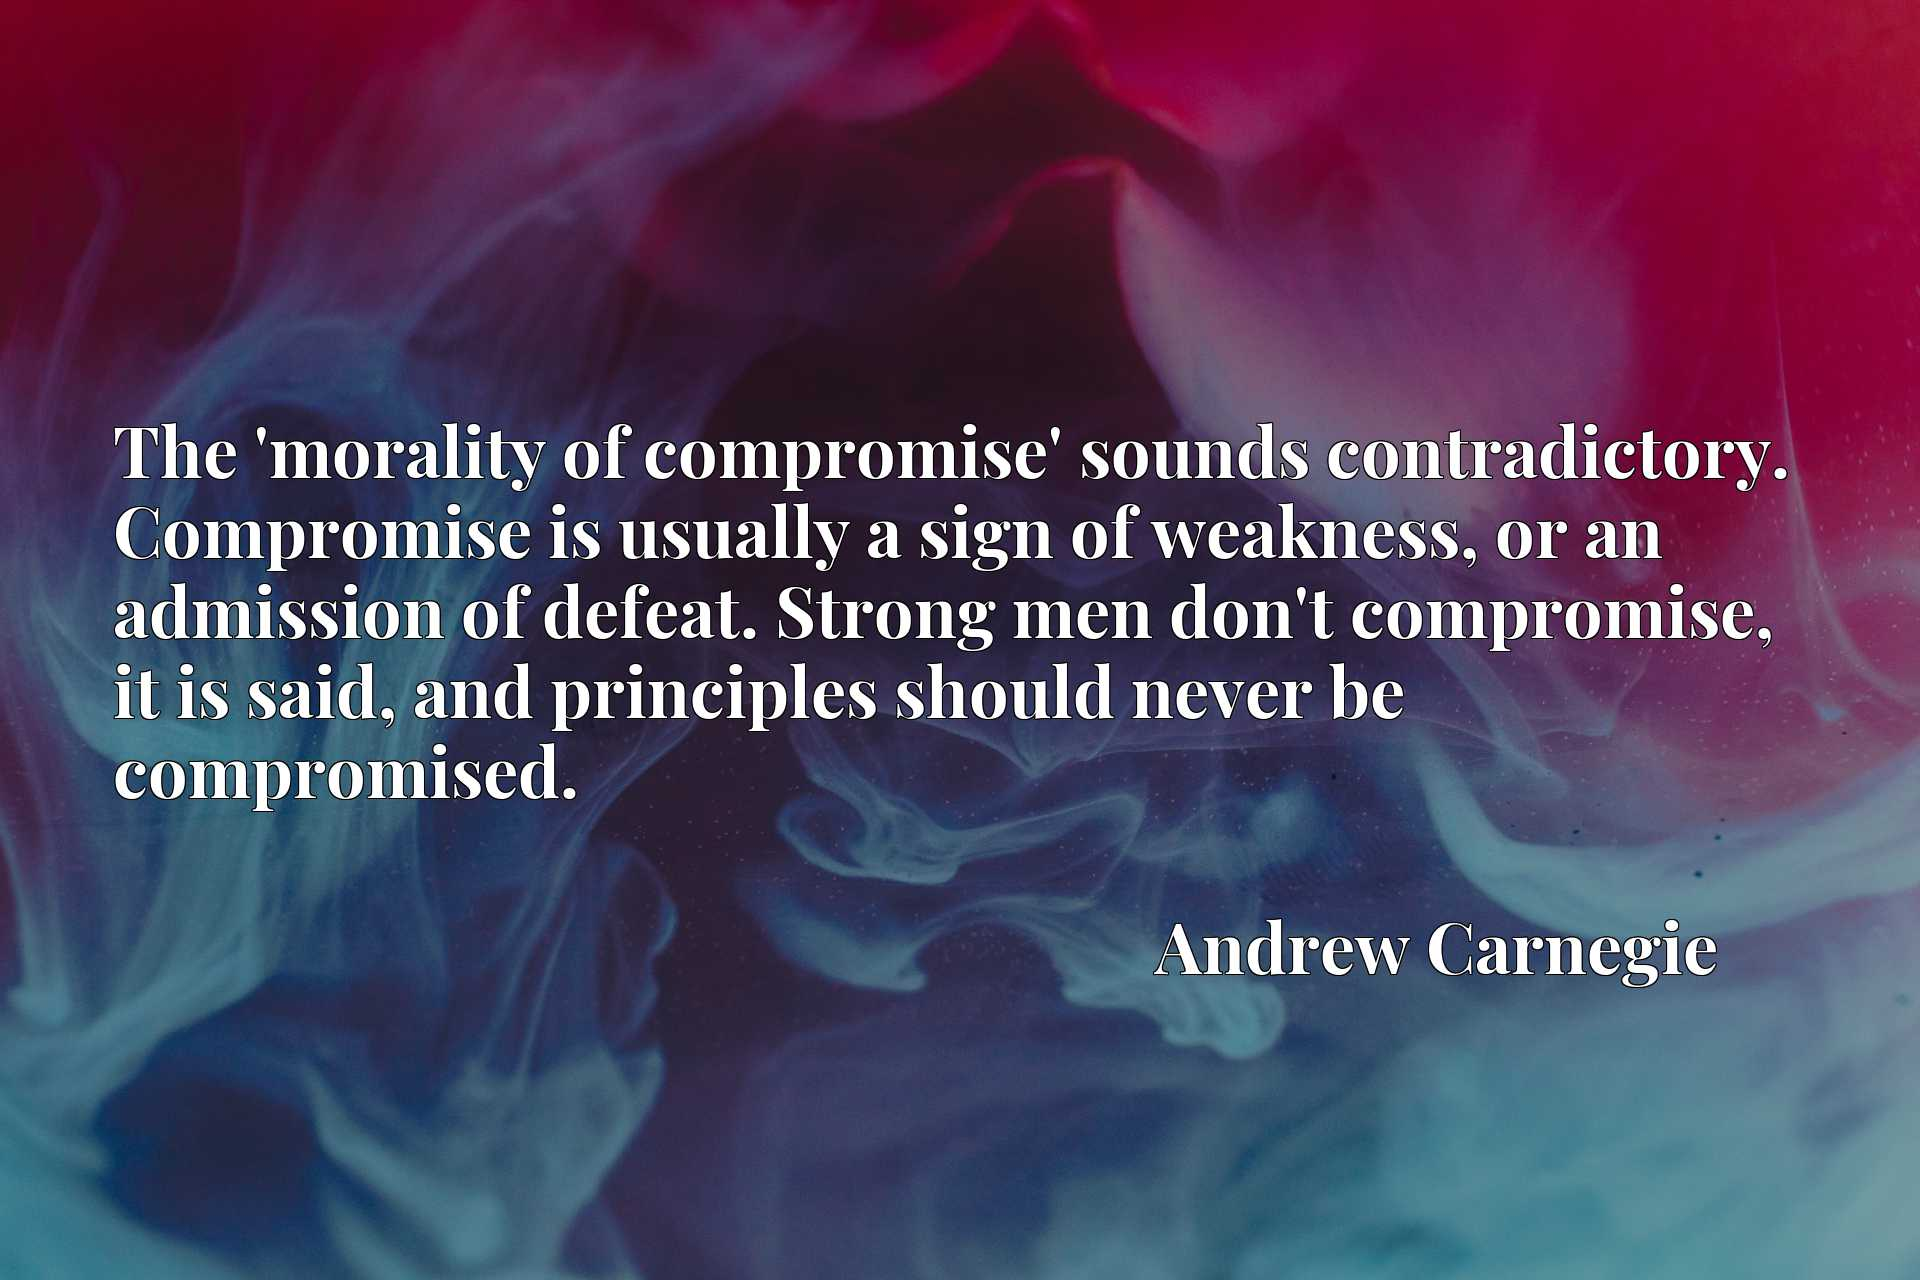 The 'morality of compromise' sounds contradictory. Compromise is usually a sign of weakness, or an admission of defeat. Strong men don't compromise, it is said, and principles should never be compromised.